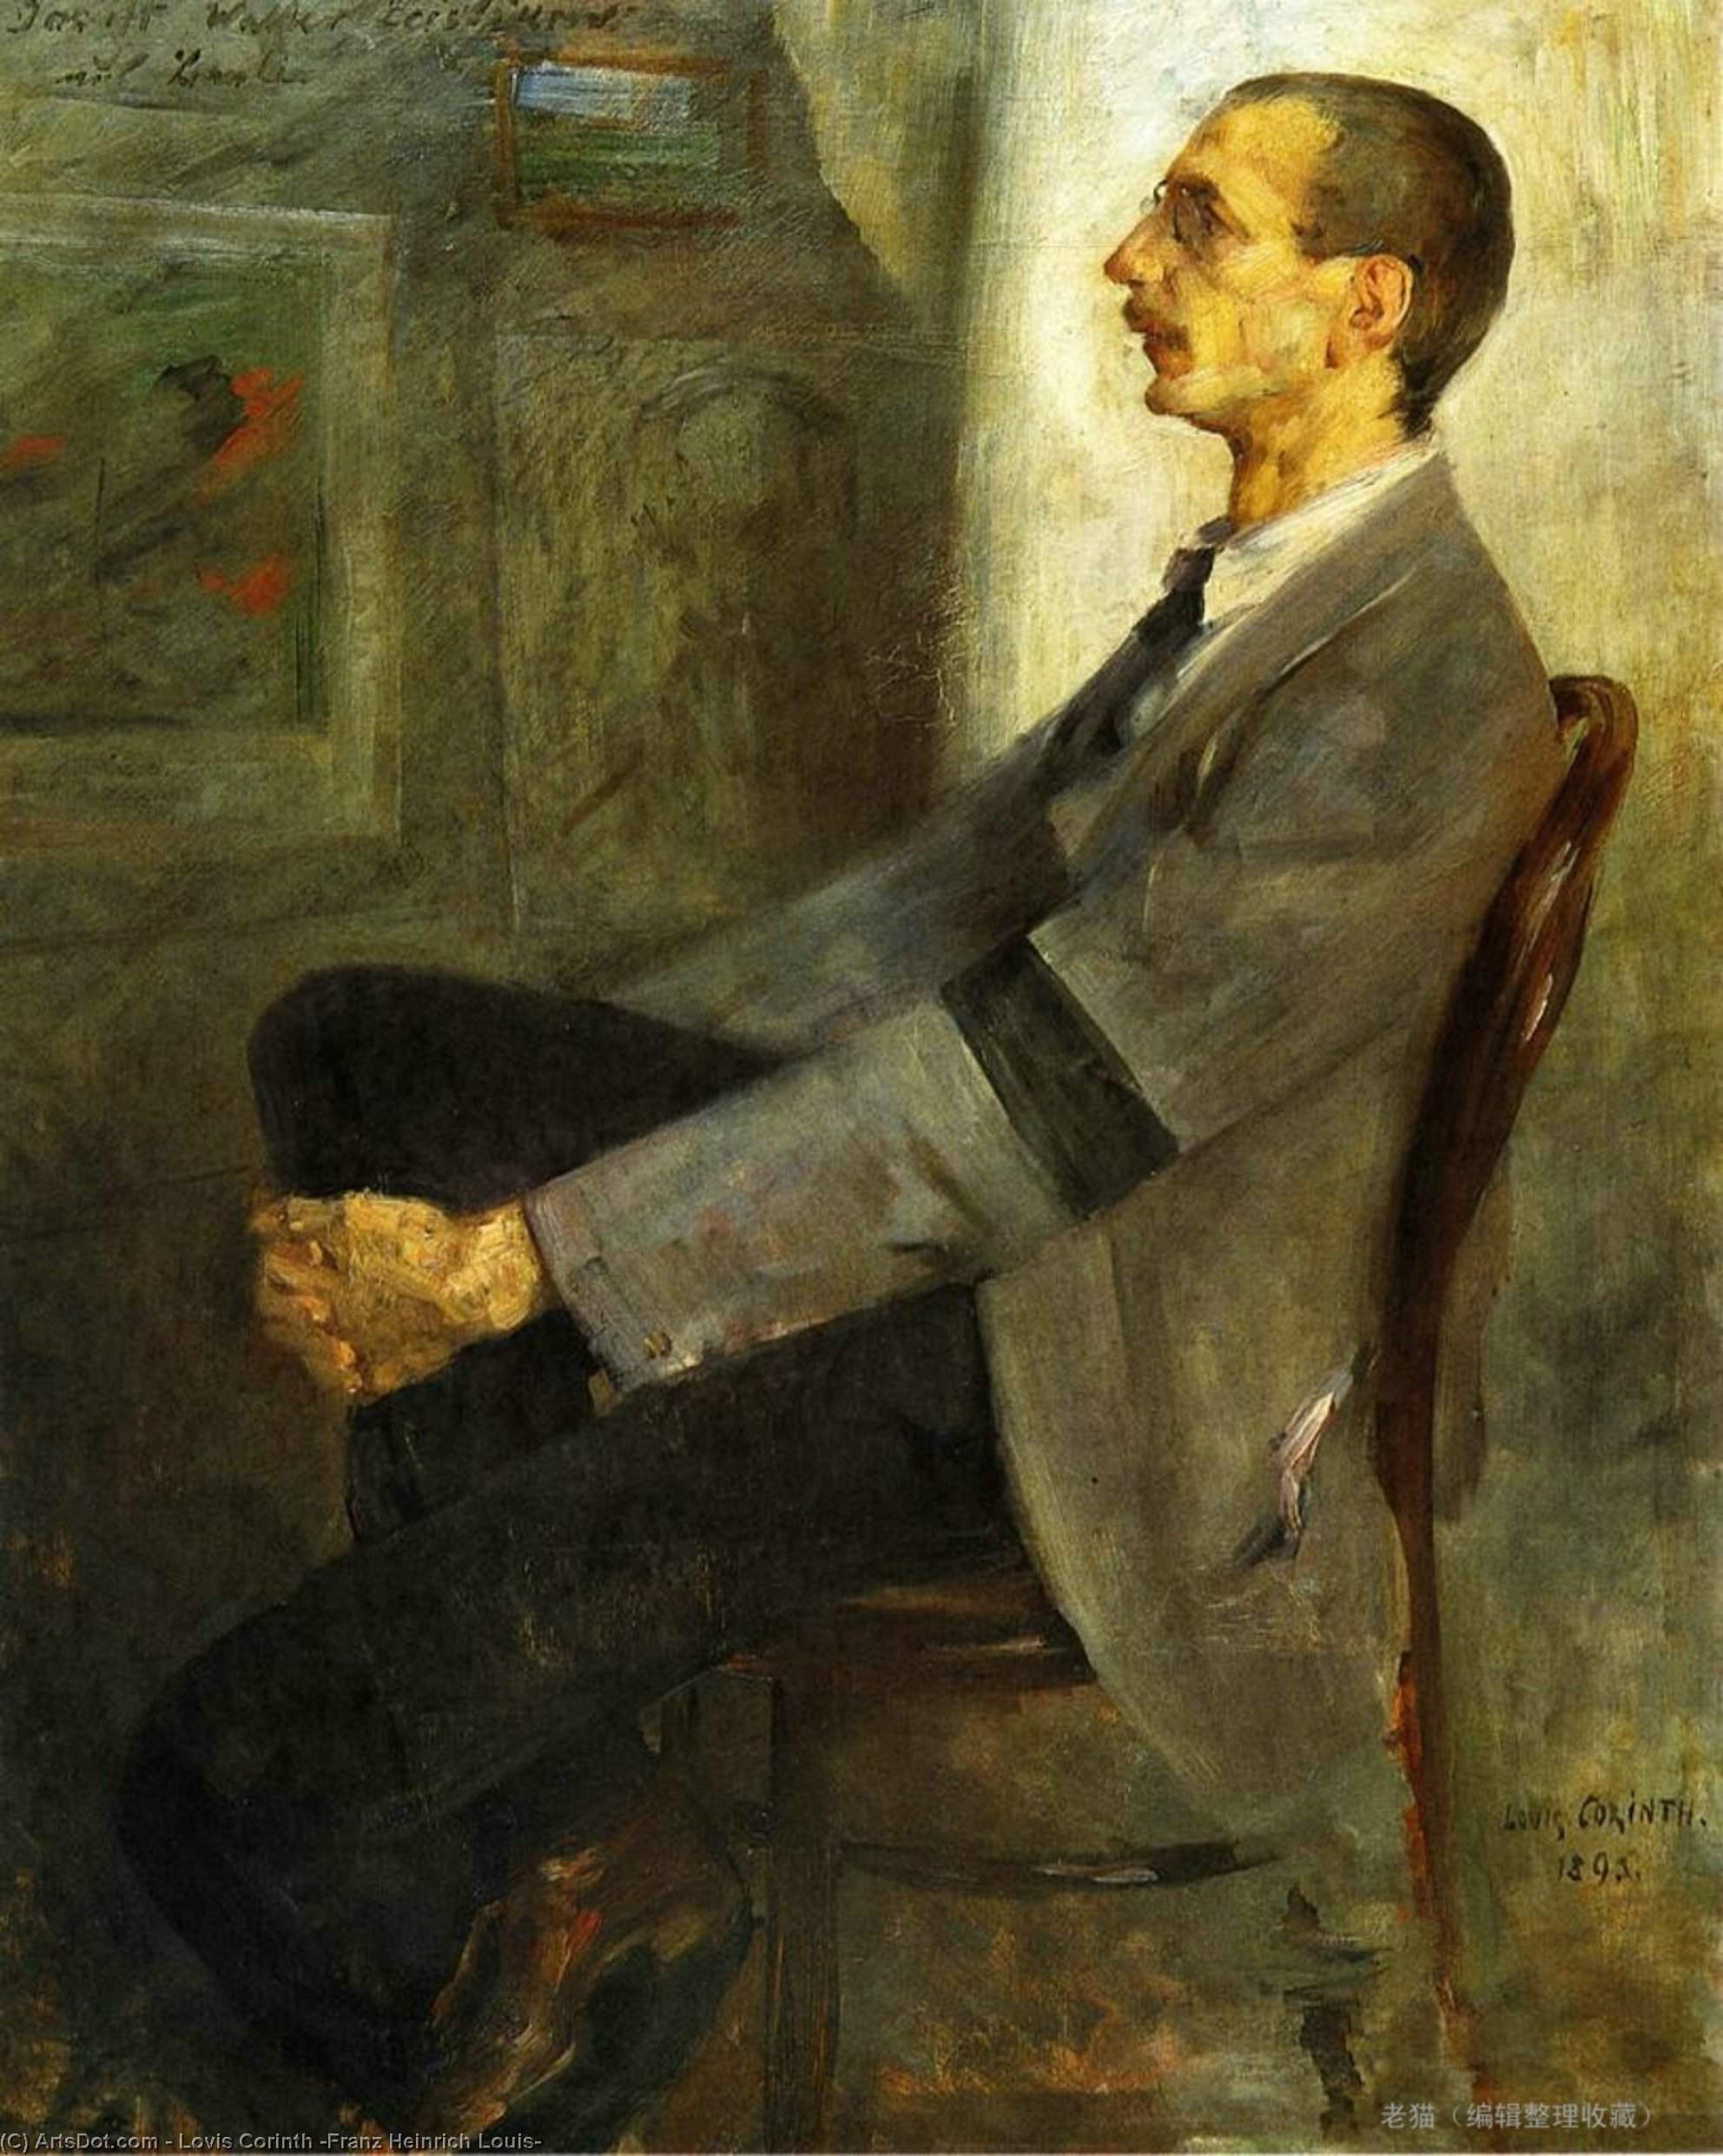 Portrait of the Painter Walter Leistikow, Oil On Canvas by Lovis Corinth (Franz Heinrich Louis) (1858-1925, Netherlands)